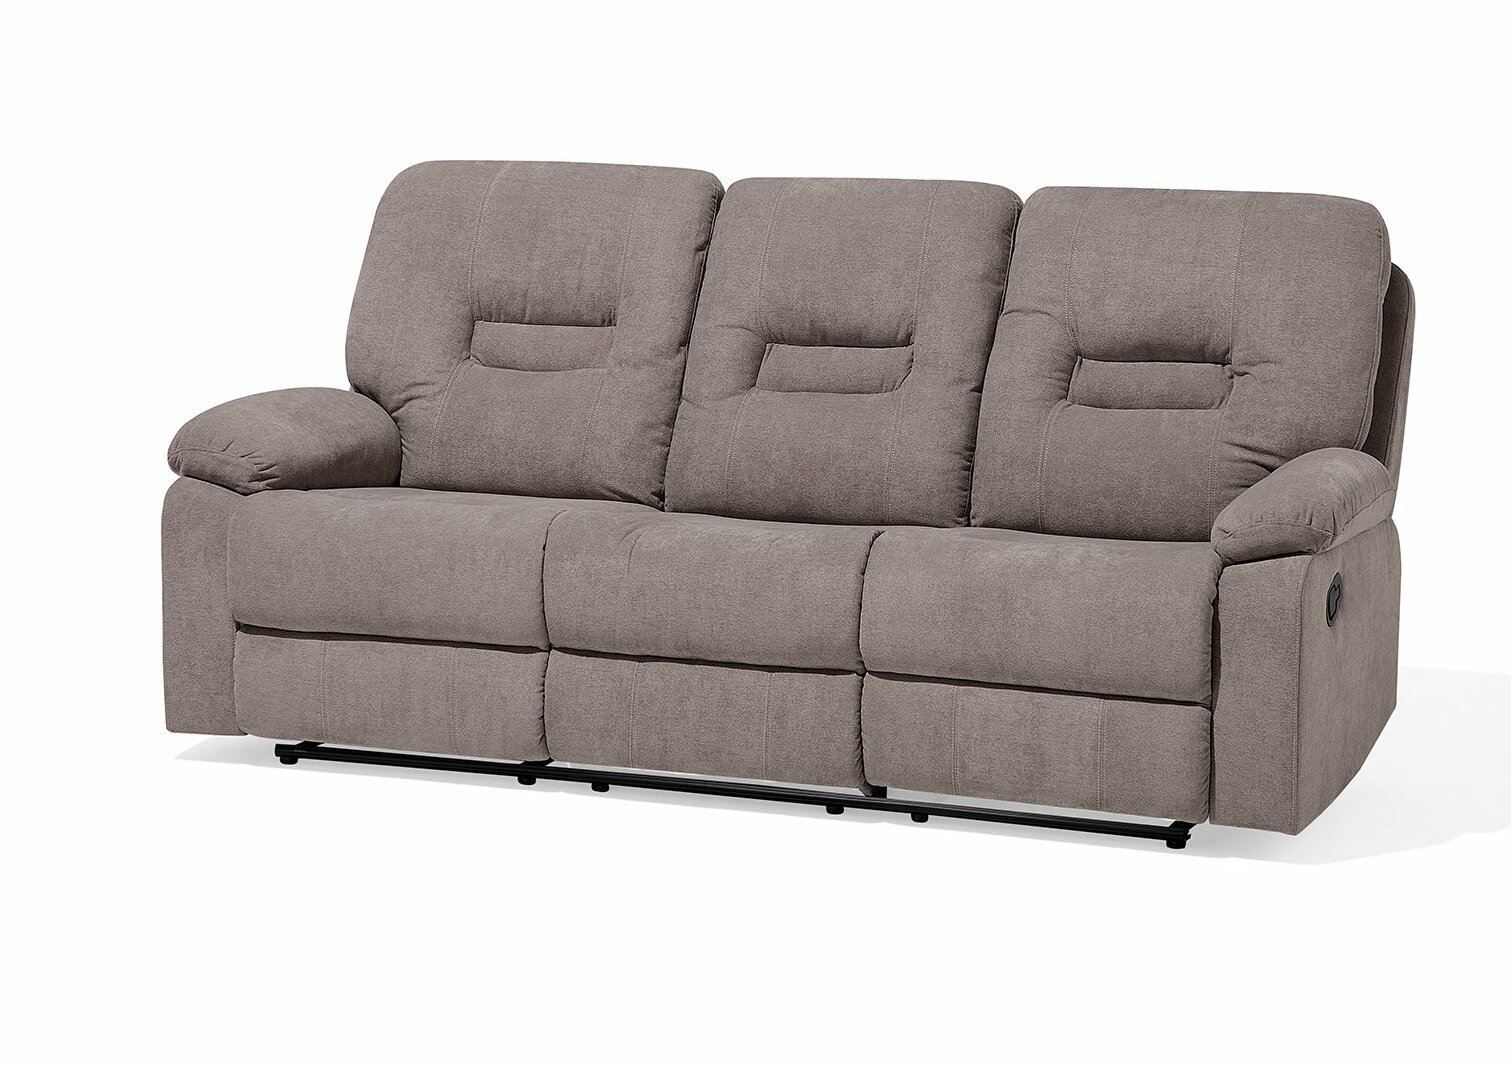 Mount Barker 3 Seater Reclining Sofa